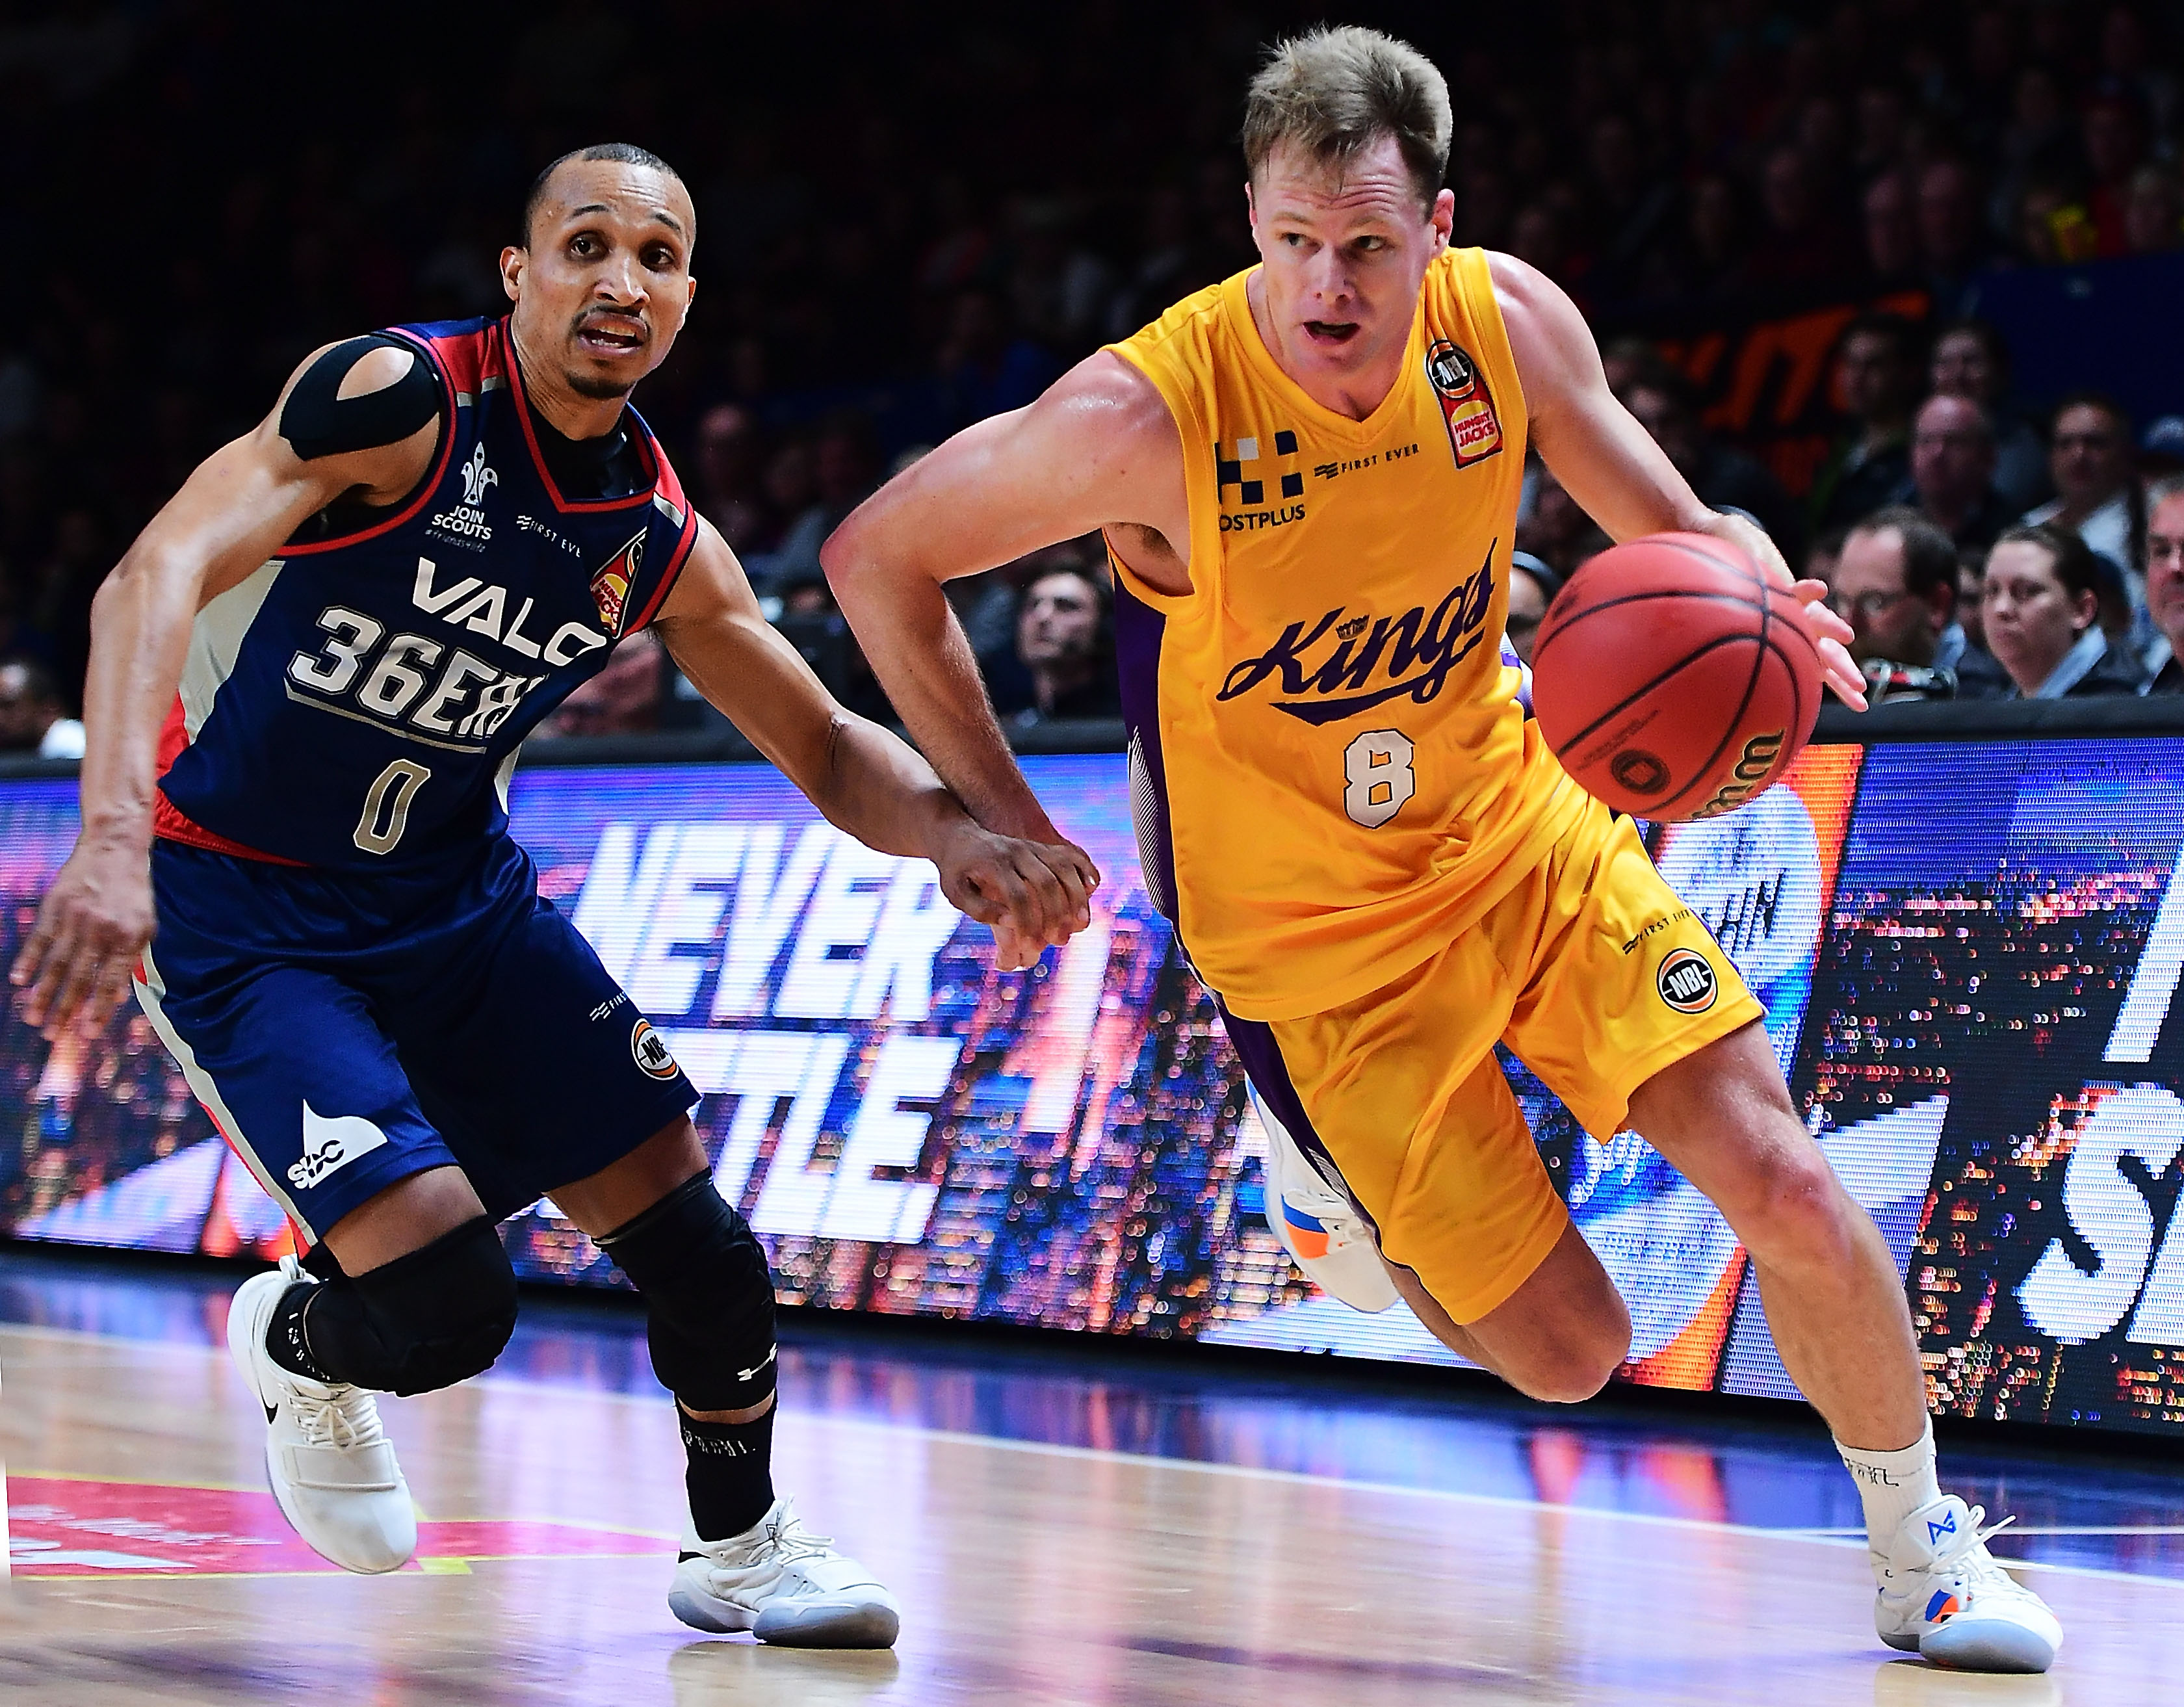 Sydney Kings Official Nationals Say Faulty Circuit Breaker Not Taylor Swift Caused Power Latest News 5 Mins Read Adelaide Make It Two From Over The